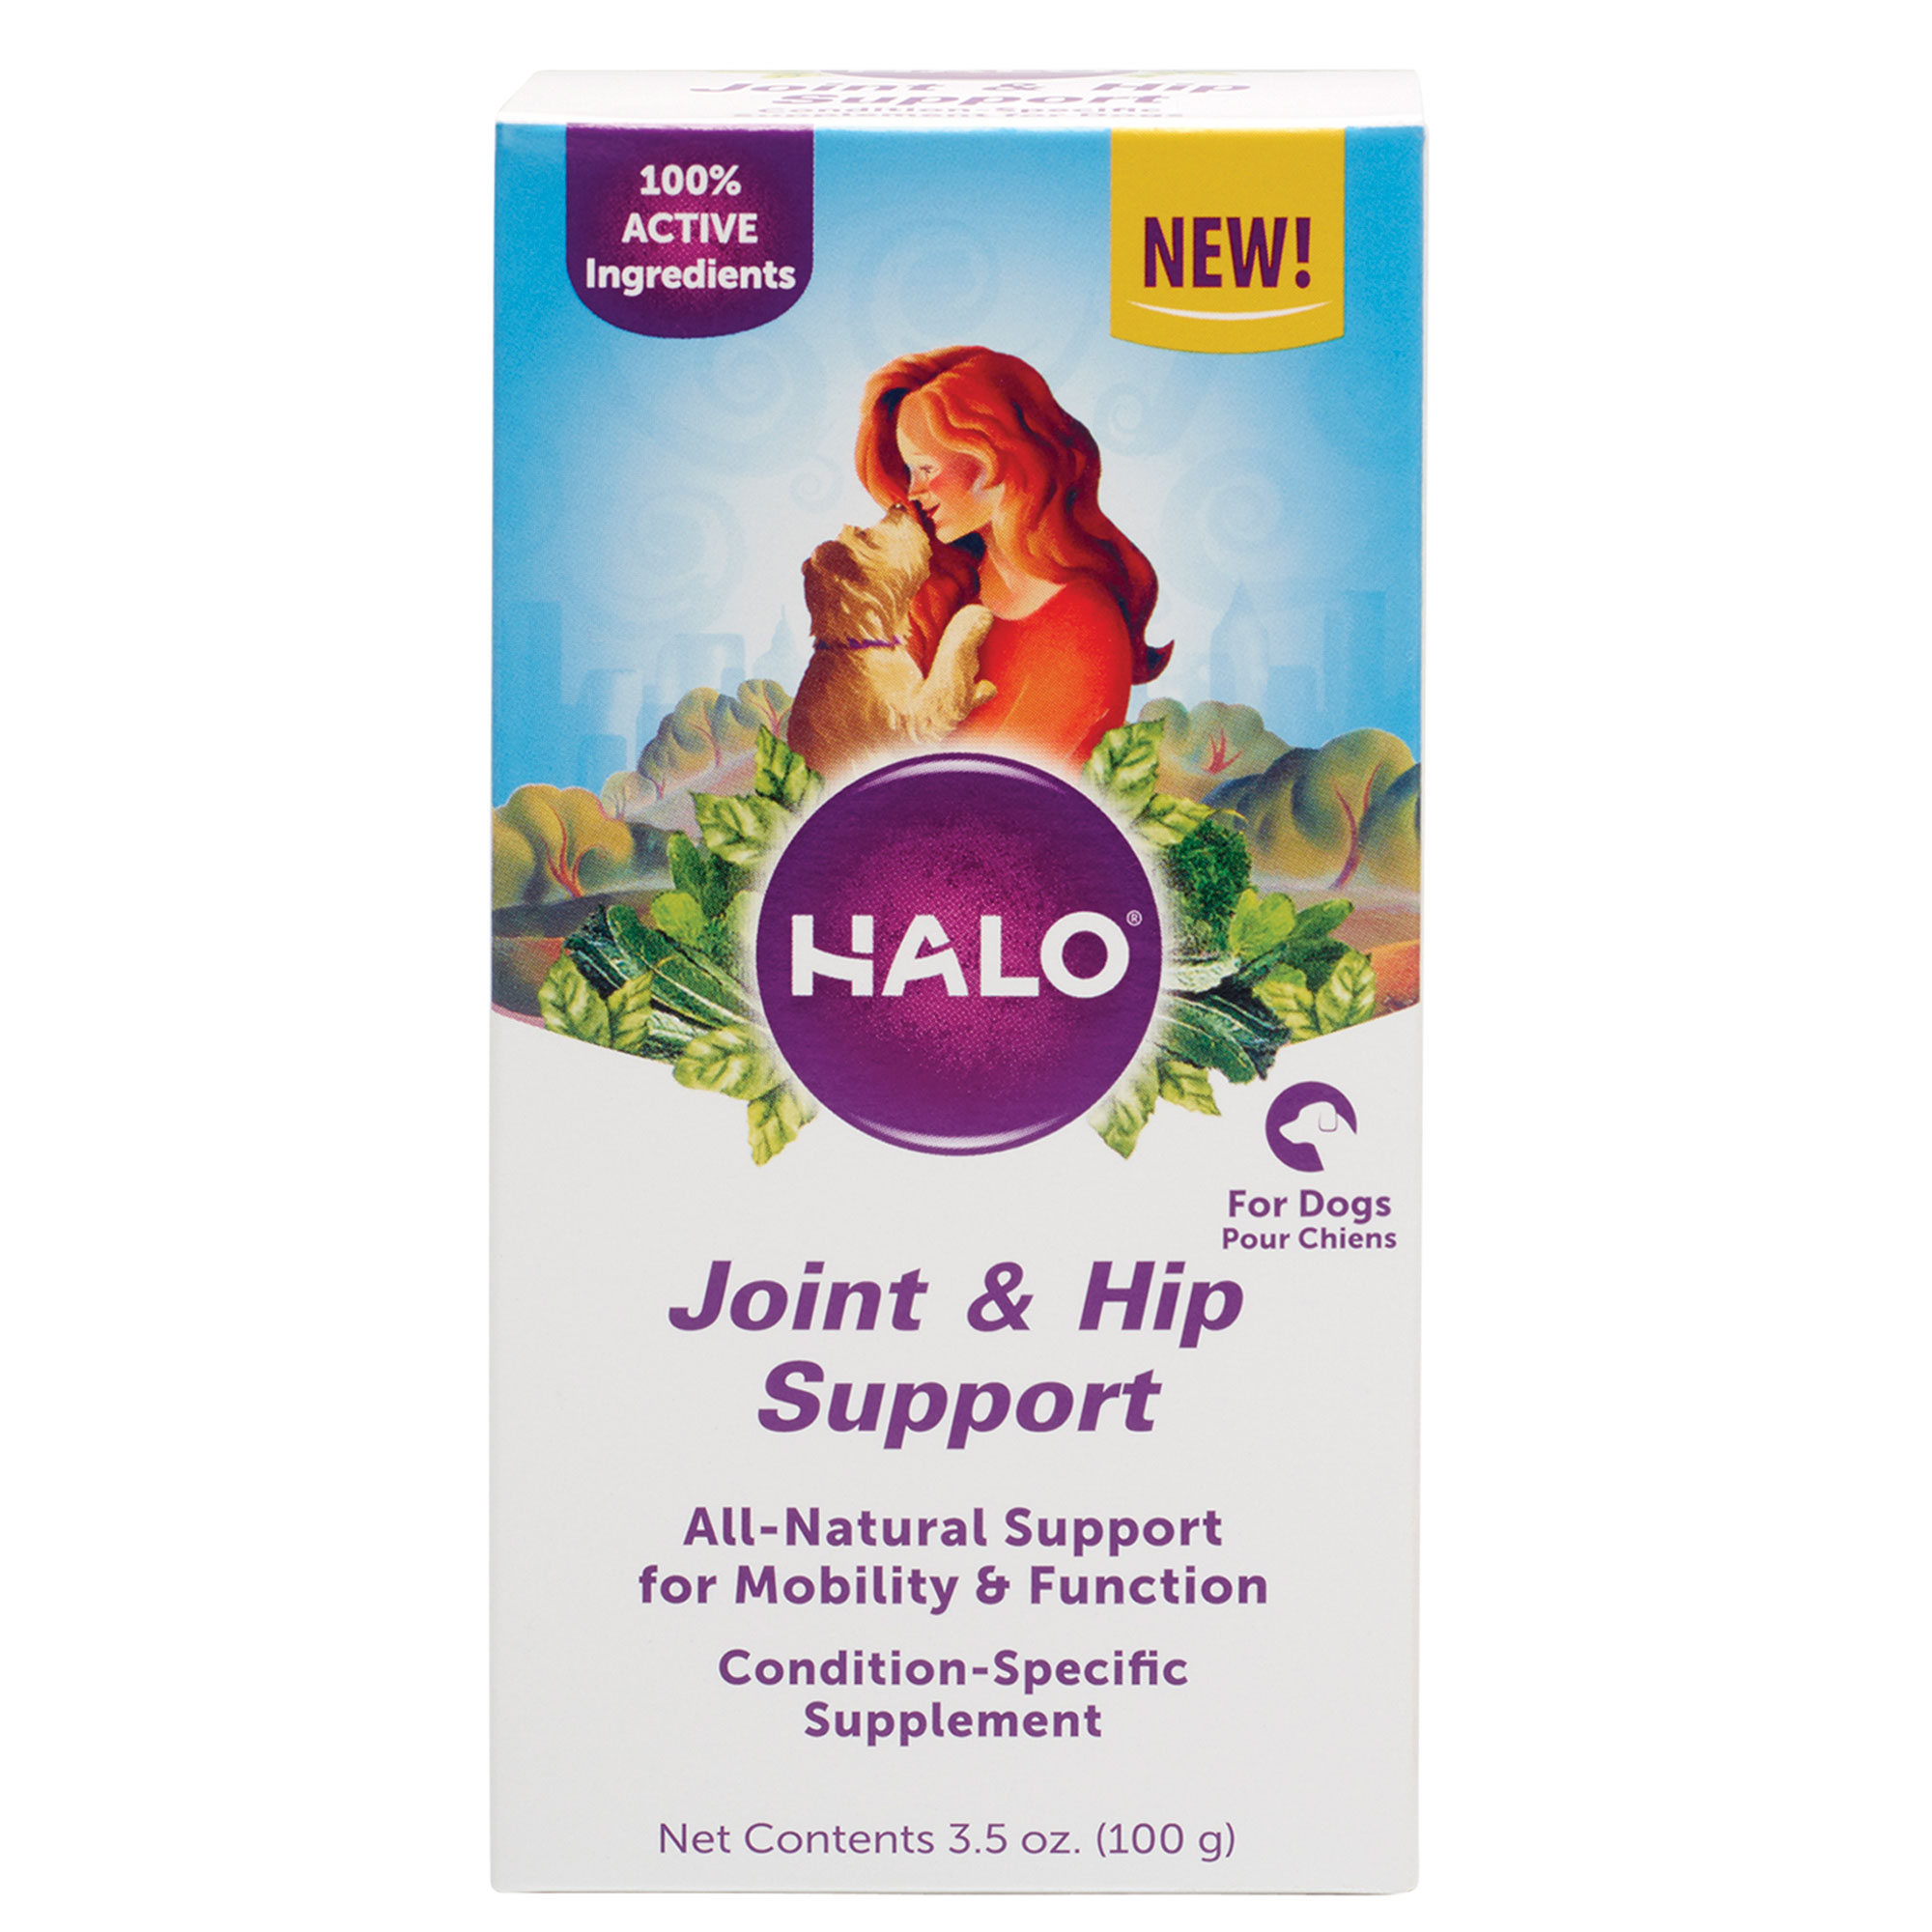 Halo Natural Supplements with Glucosamine for Dogs, Joint & Hip Support, 3.5-Ounce Bottle